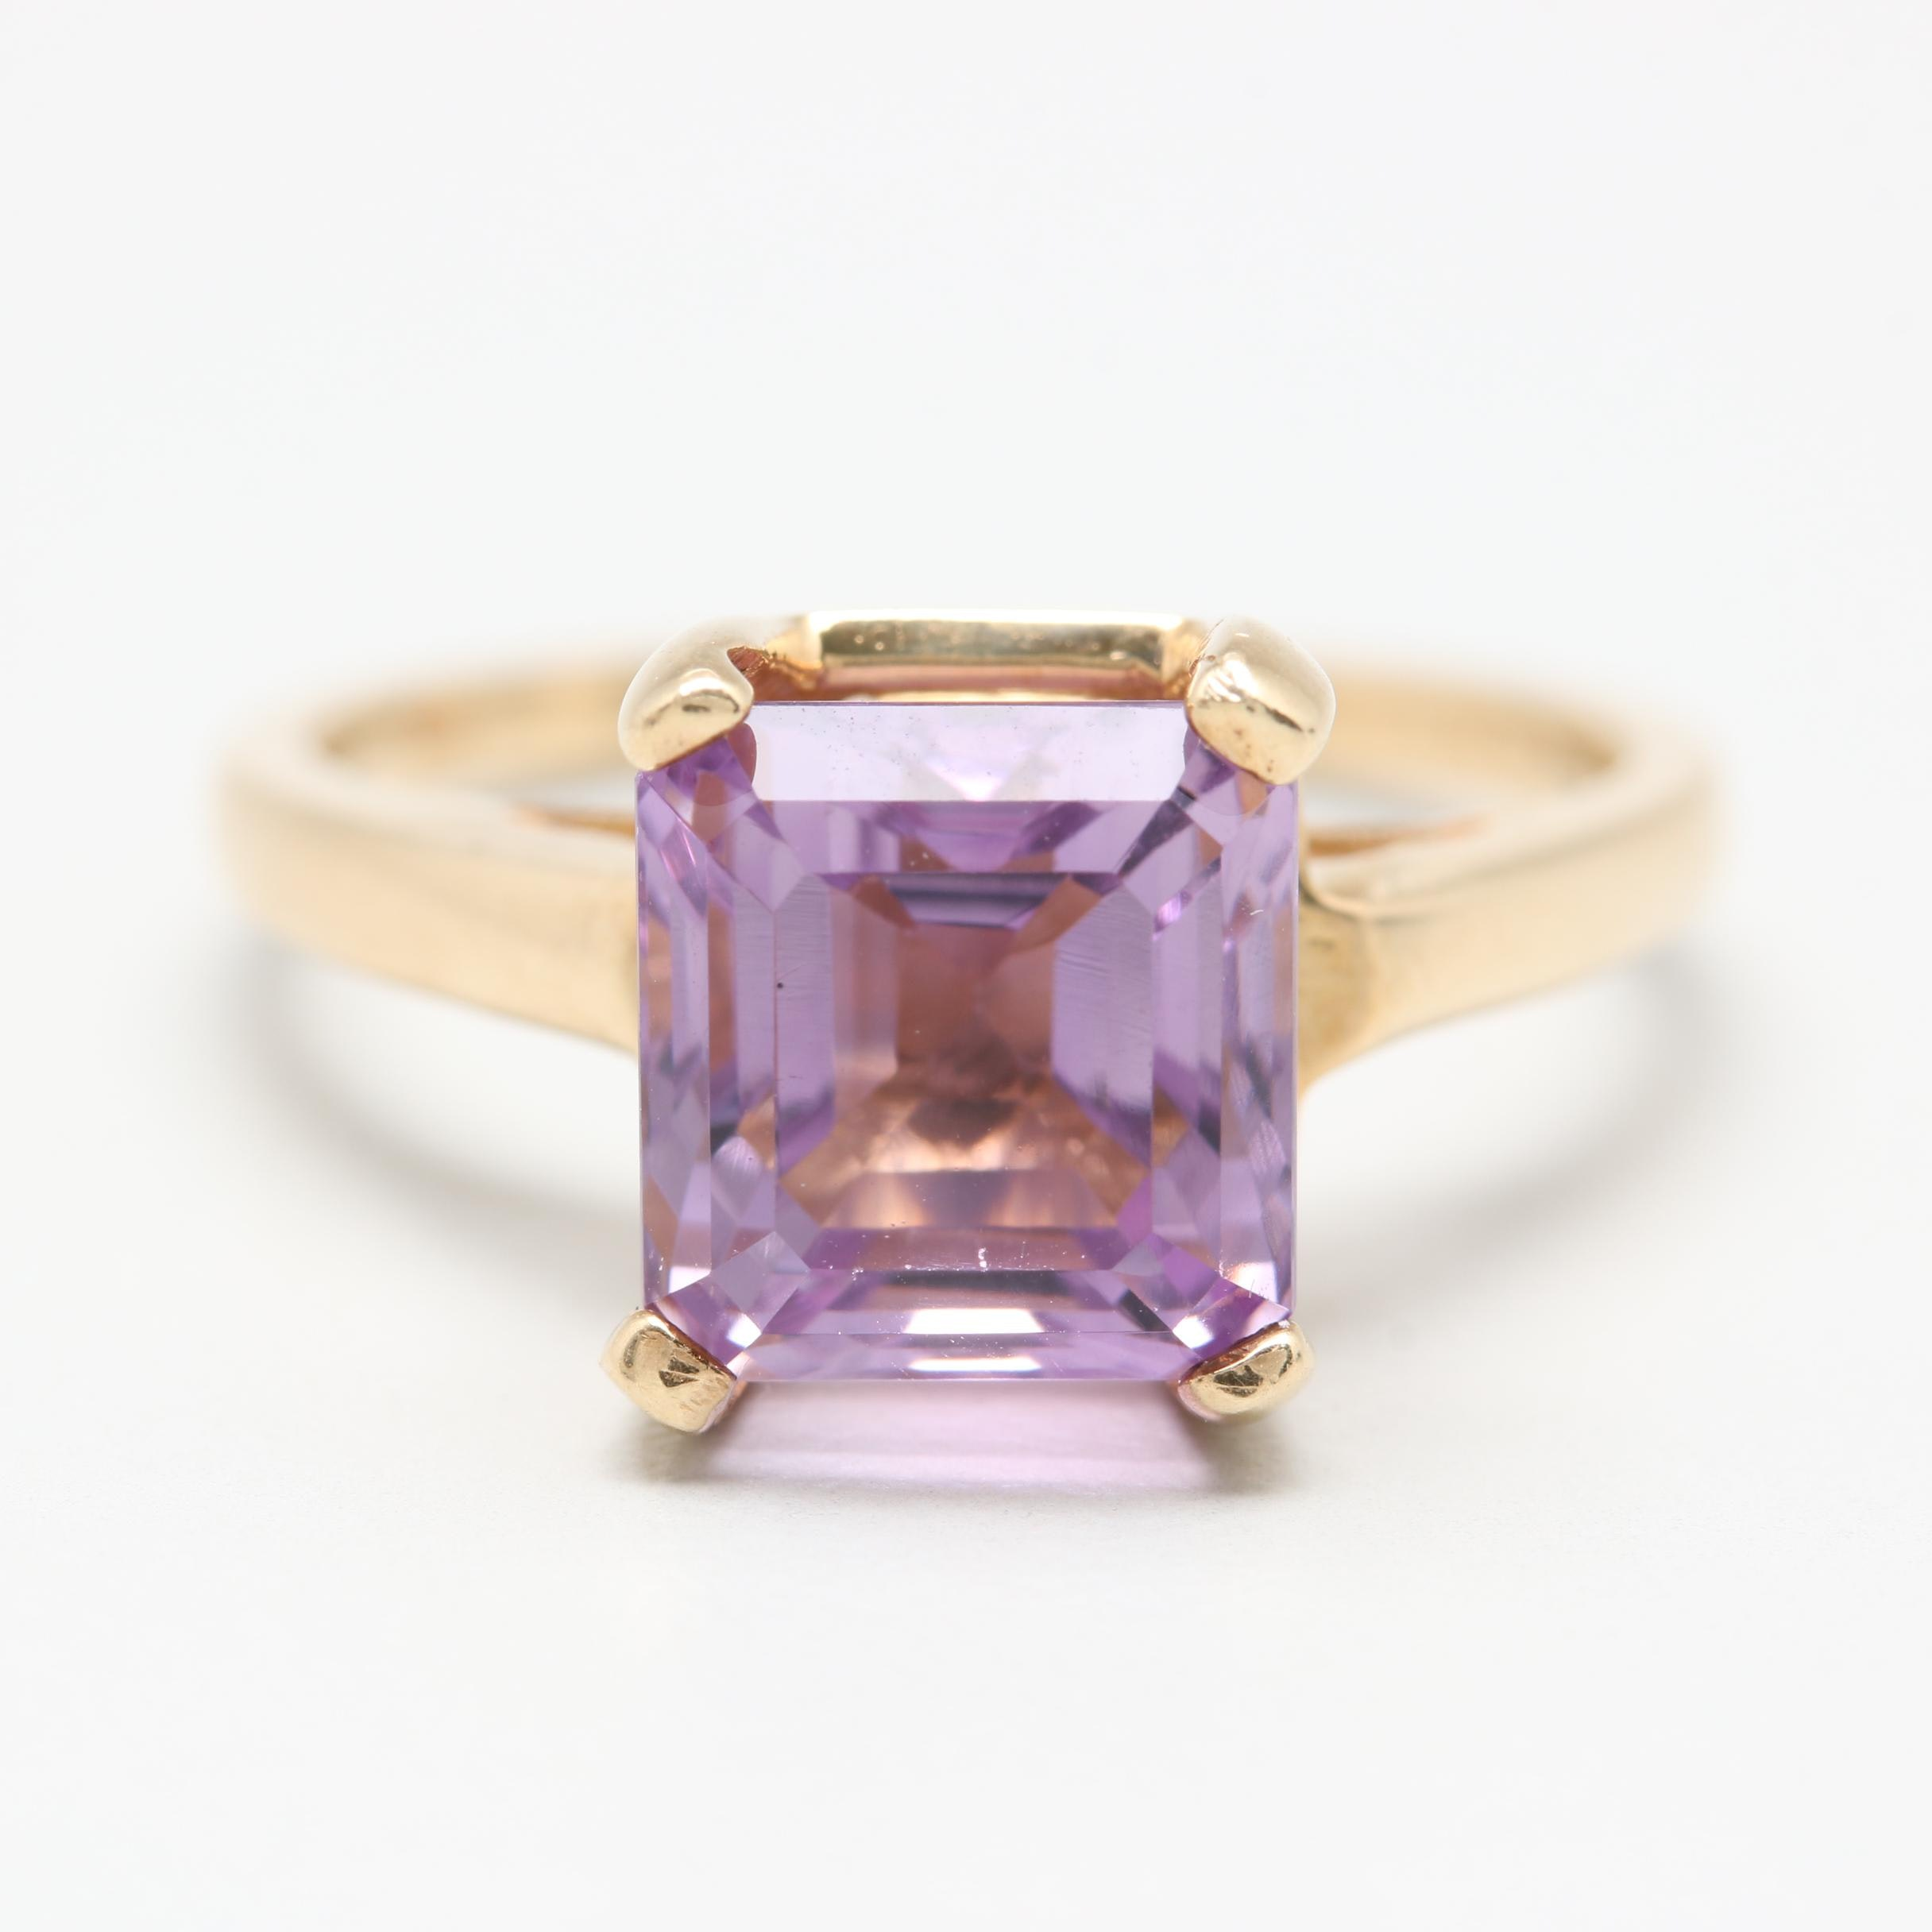 14K Yellow Gold Amethyst Solitaire Ring